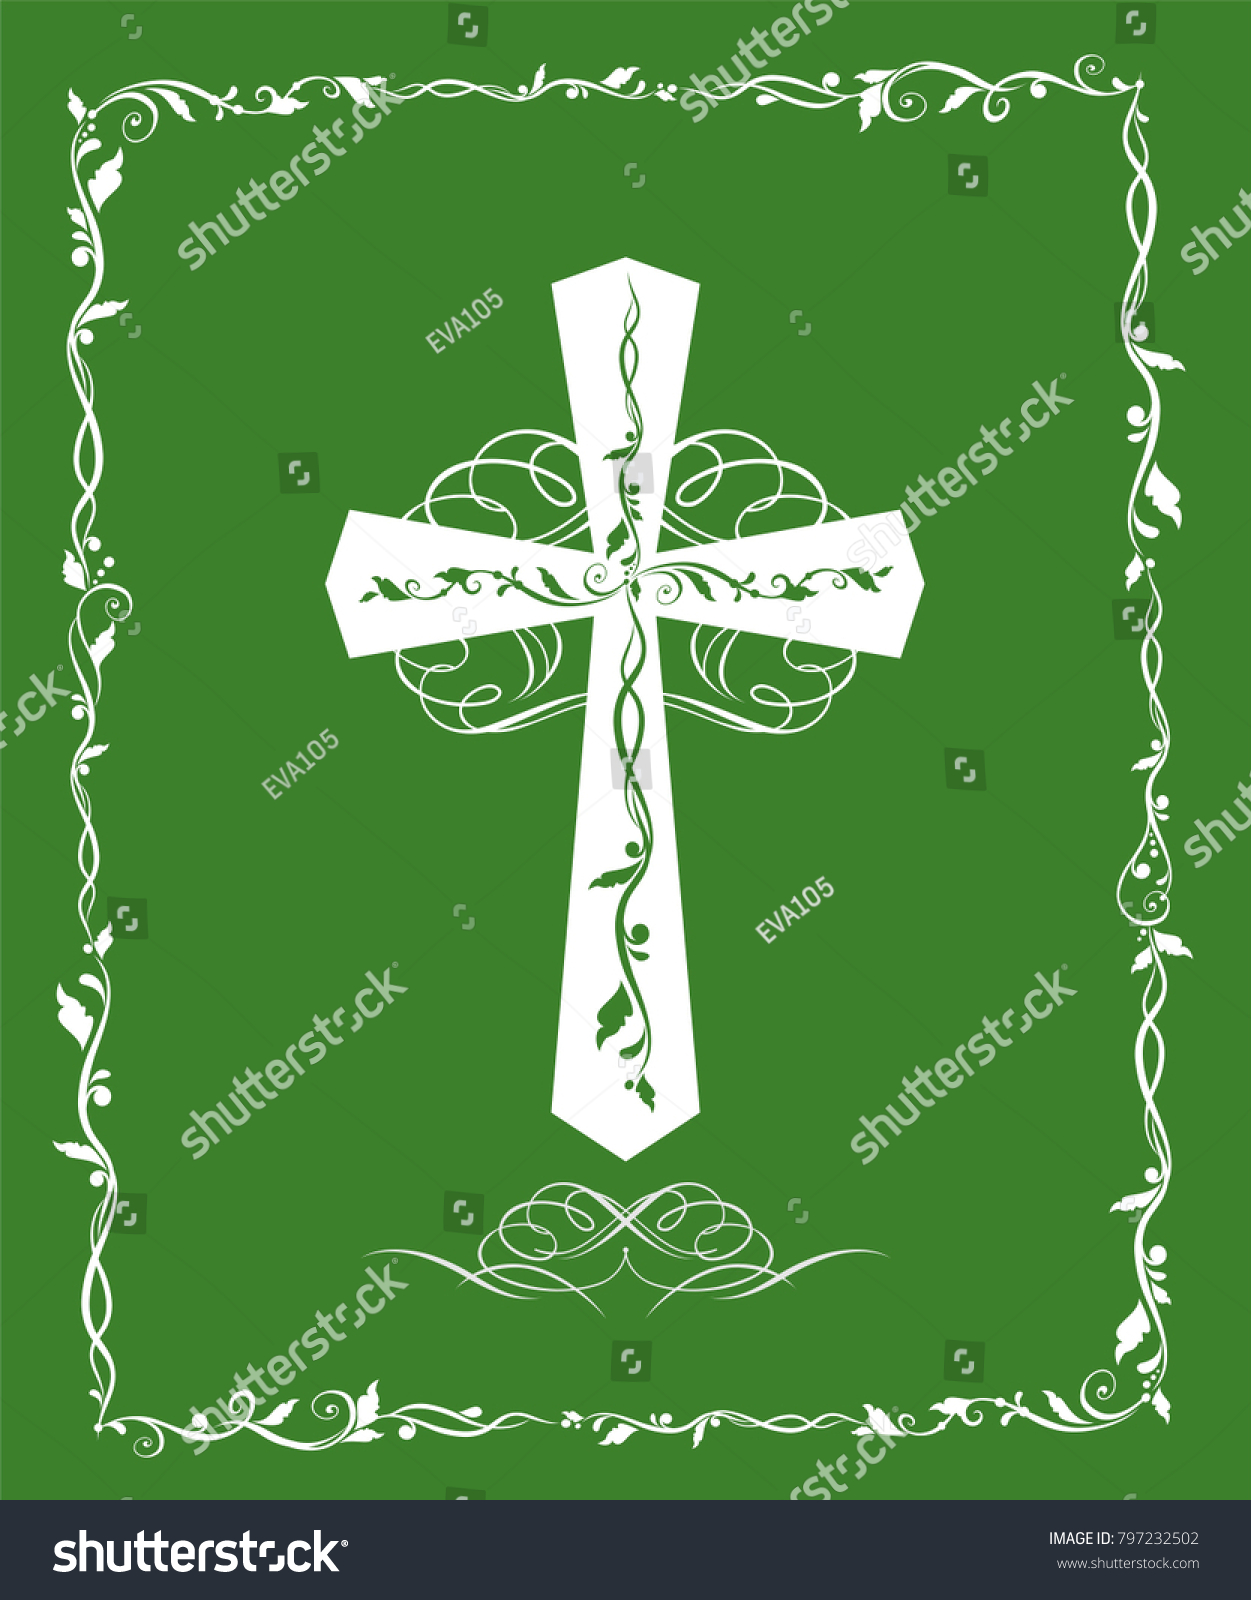 Symbols and rituals of baptism images symbol and sign ideas green greeting card catholic cross baptism stock vector 797232502 green greeting card with catholic cross for biocorpaavc Image collections